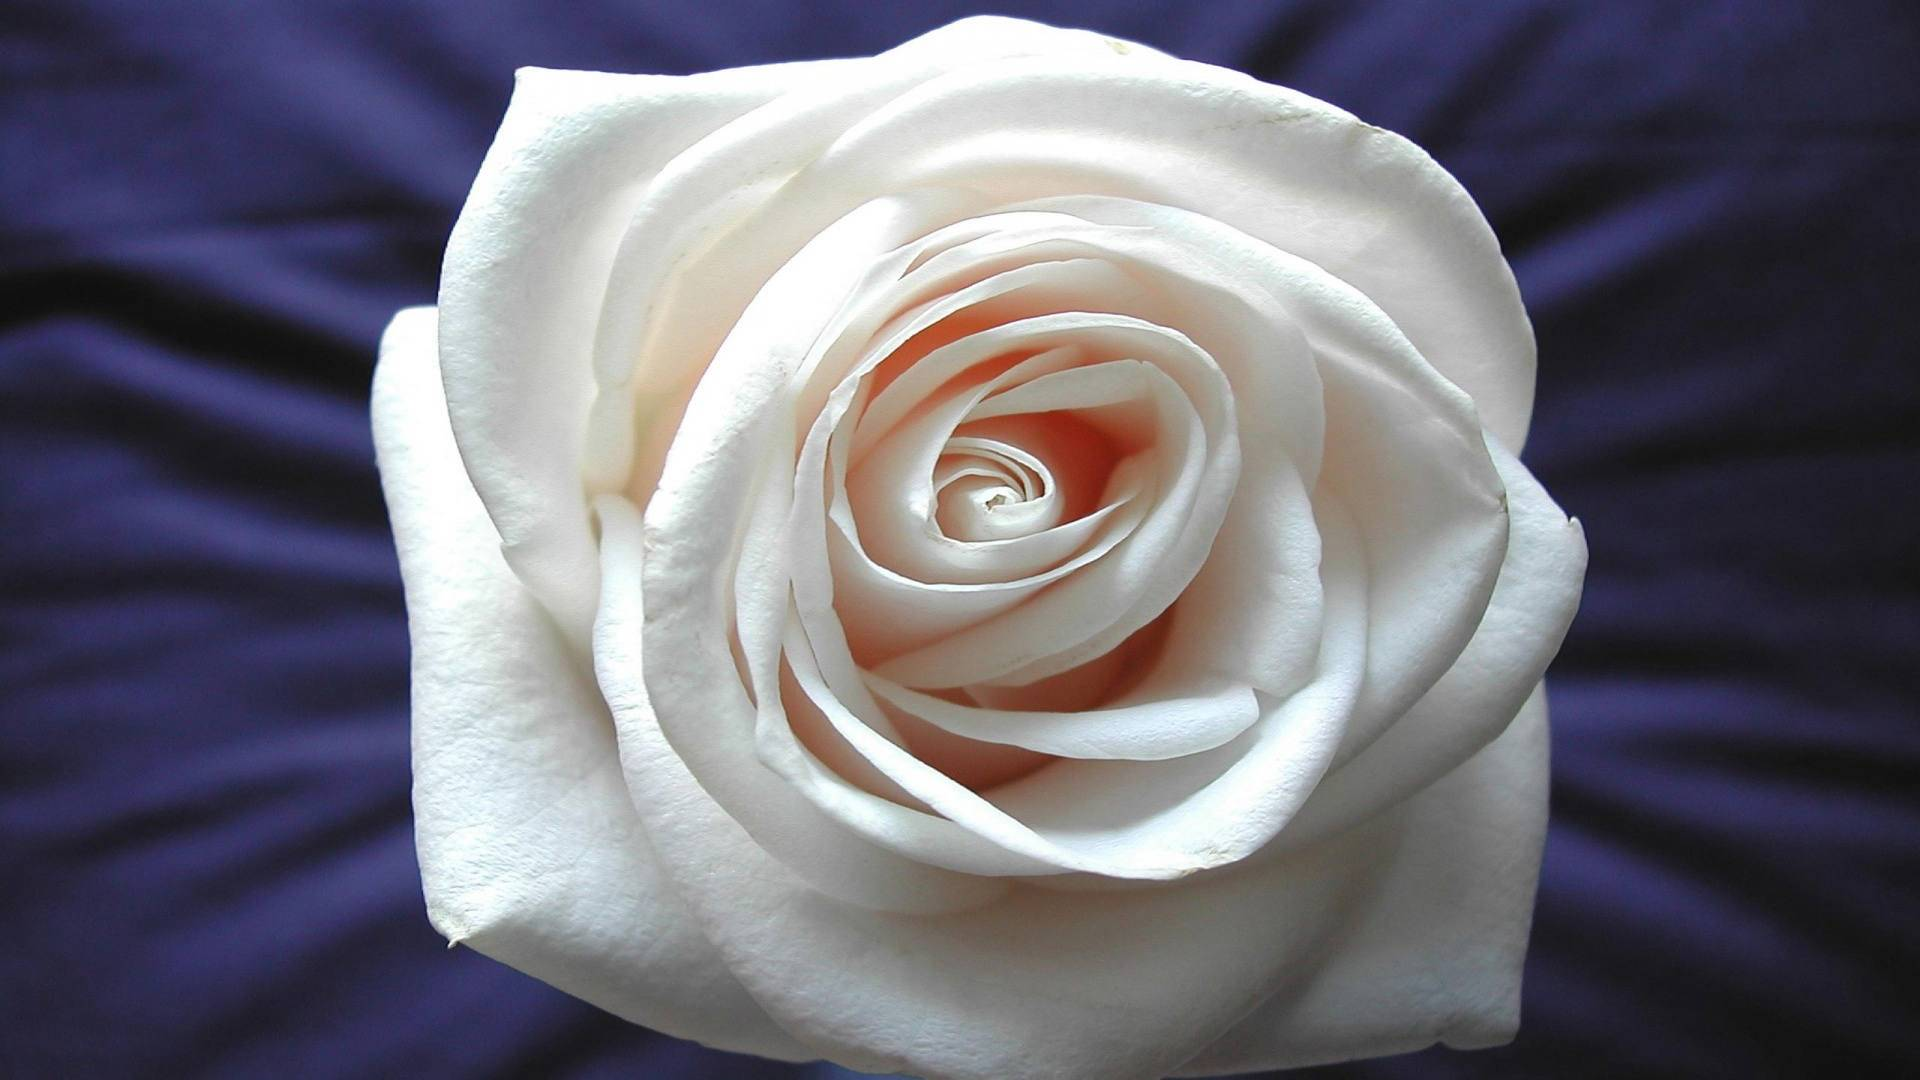 white rose hd wallpaper background images wallpapers